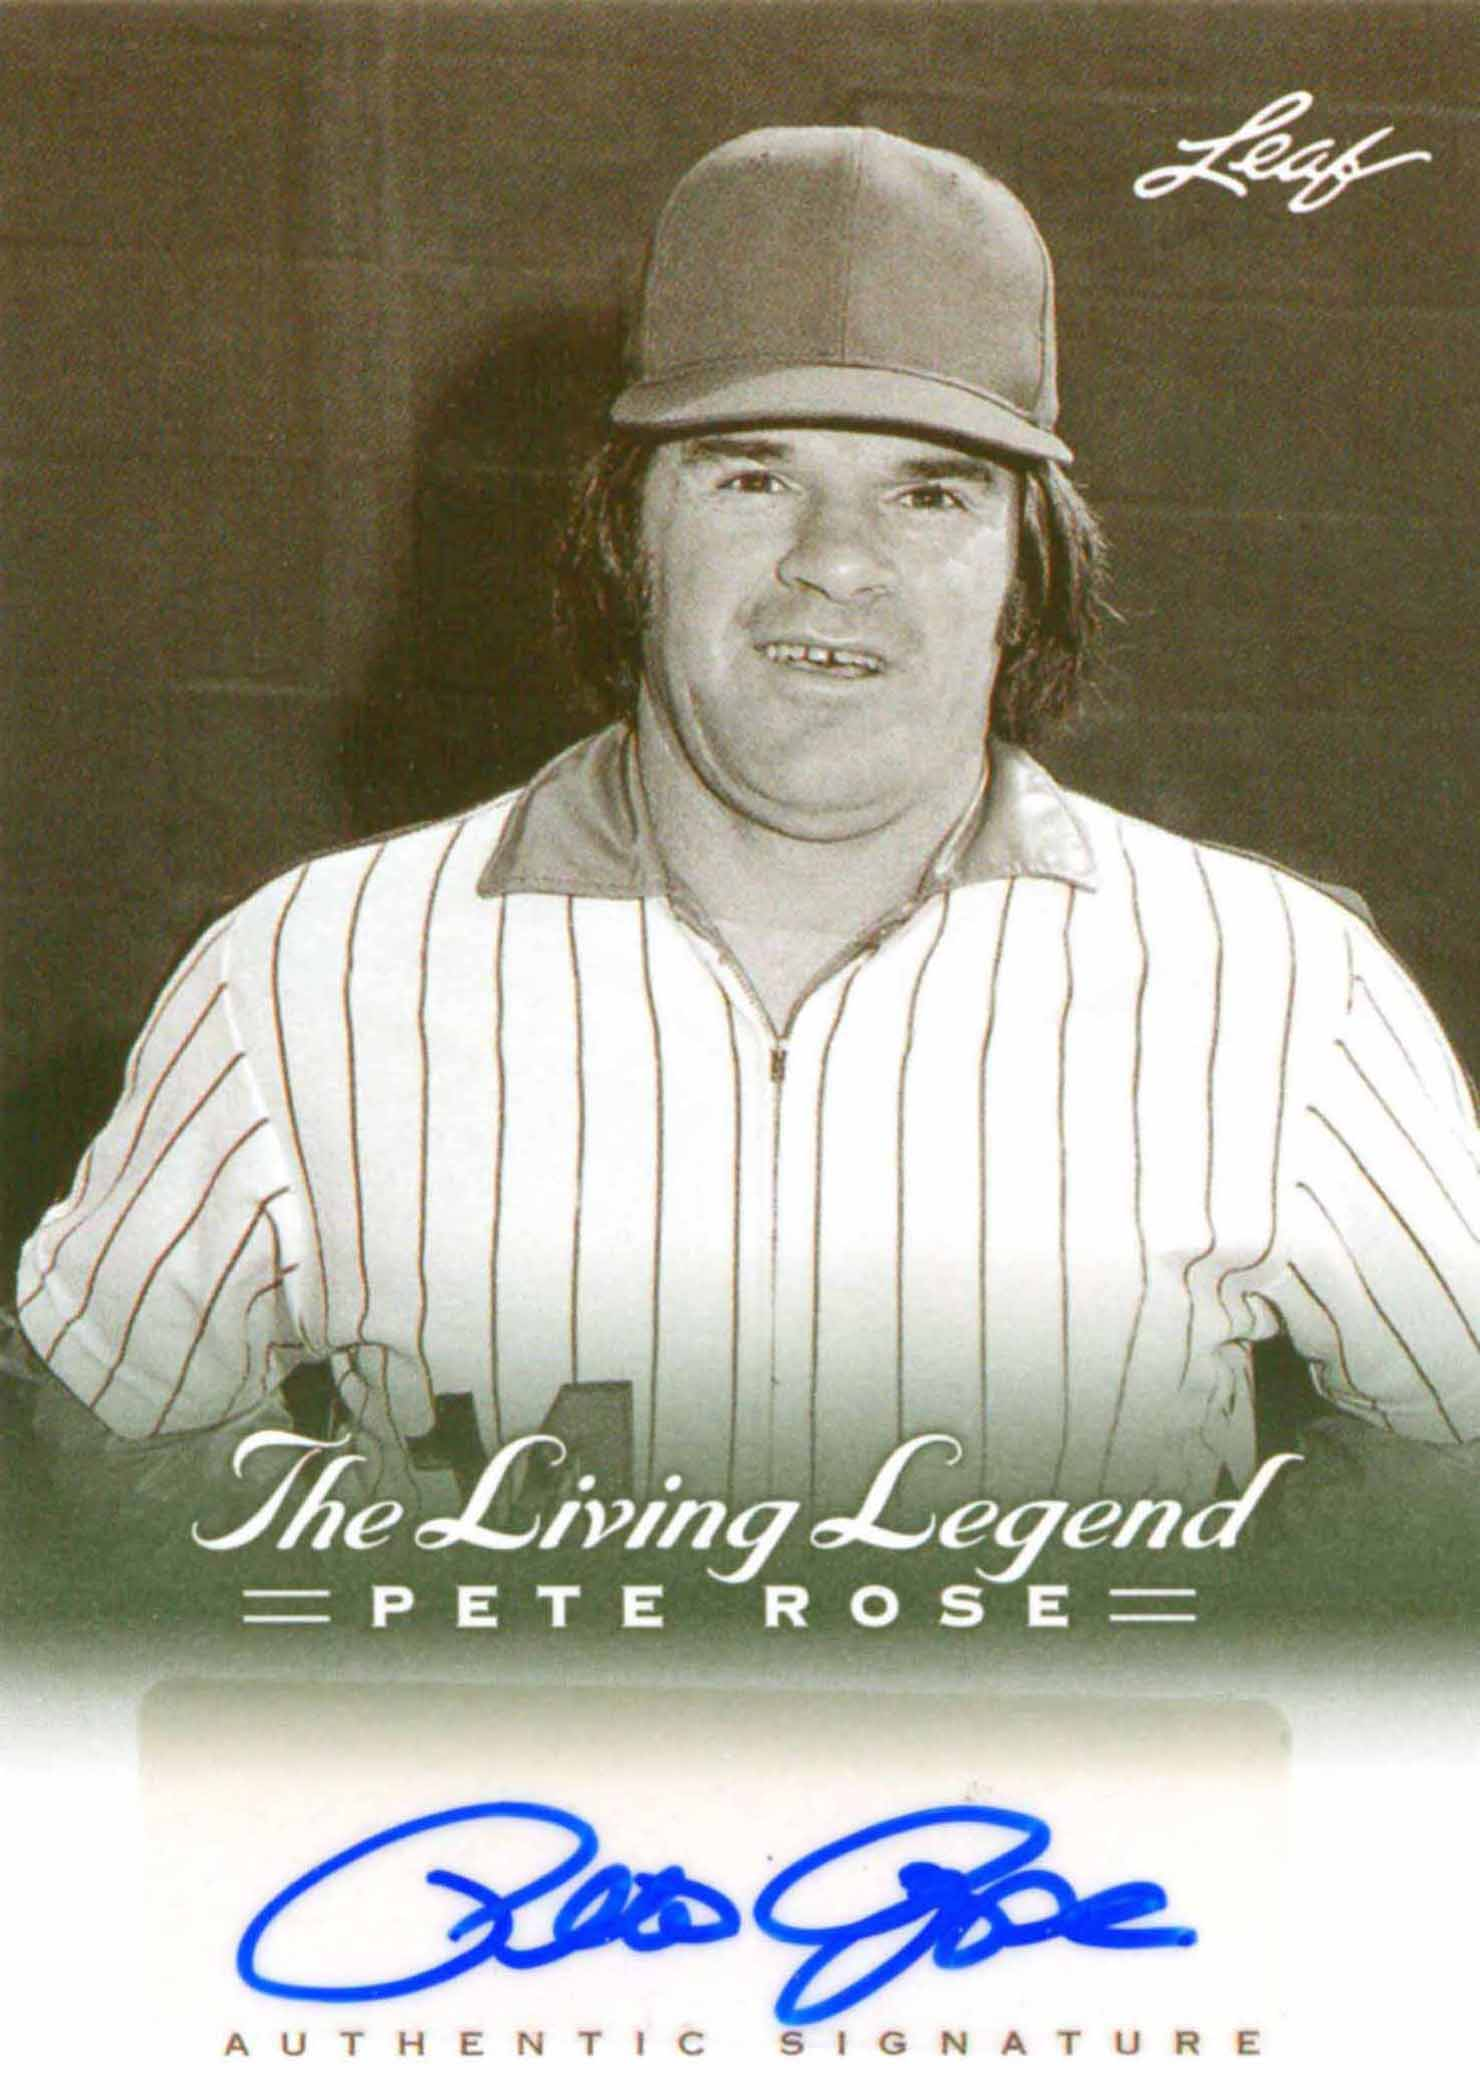 2012 Leaf Pete Rose The Living Legend Autographs